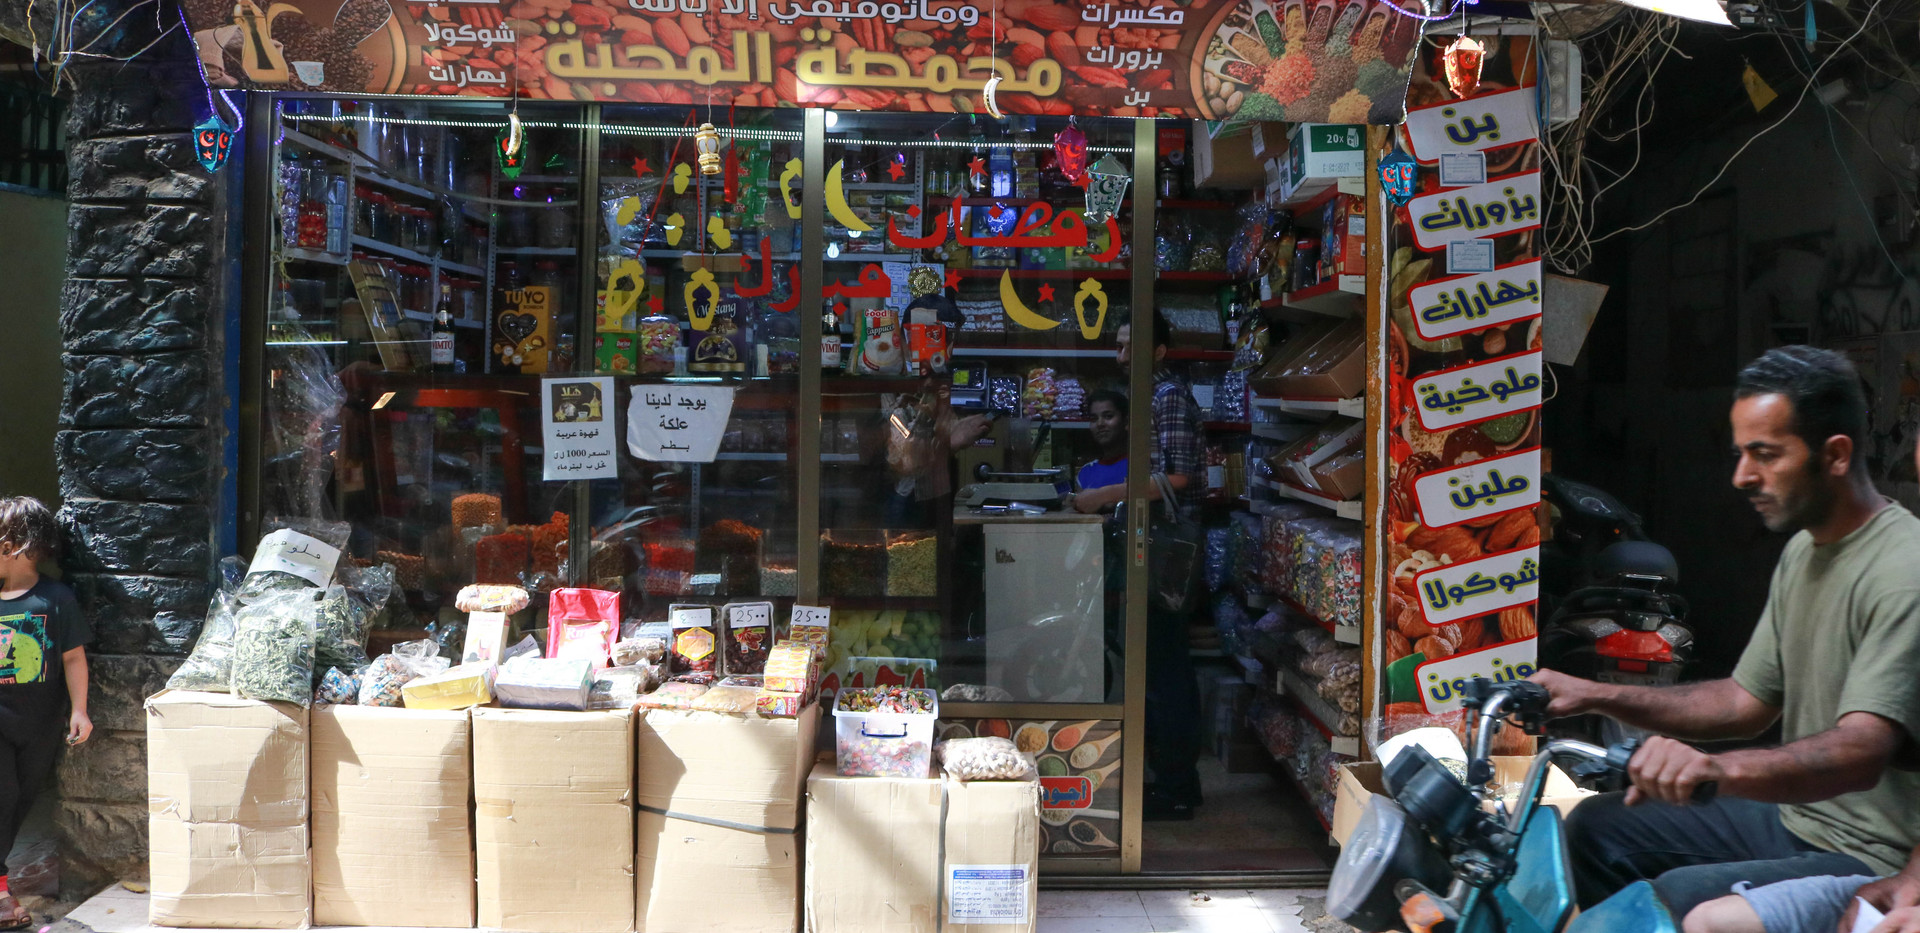 During the Ramadan in the Shatila camp, some decorate their shops to celebrate it.